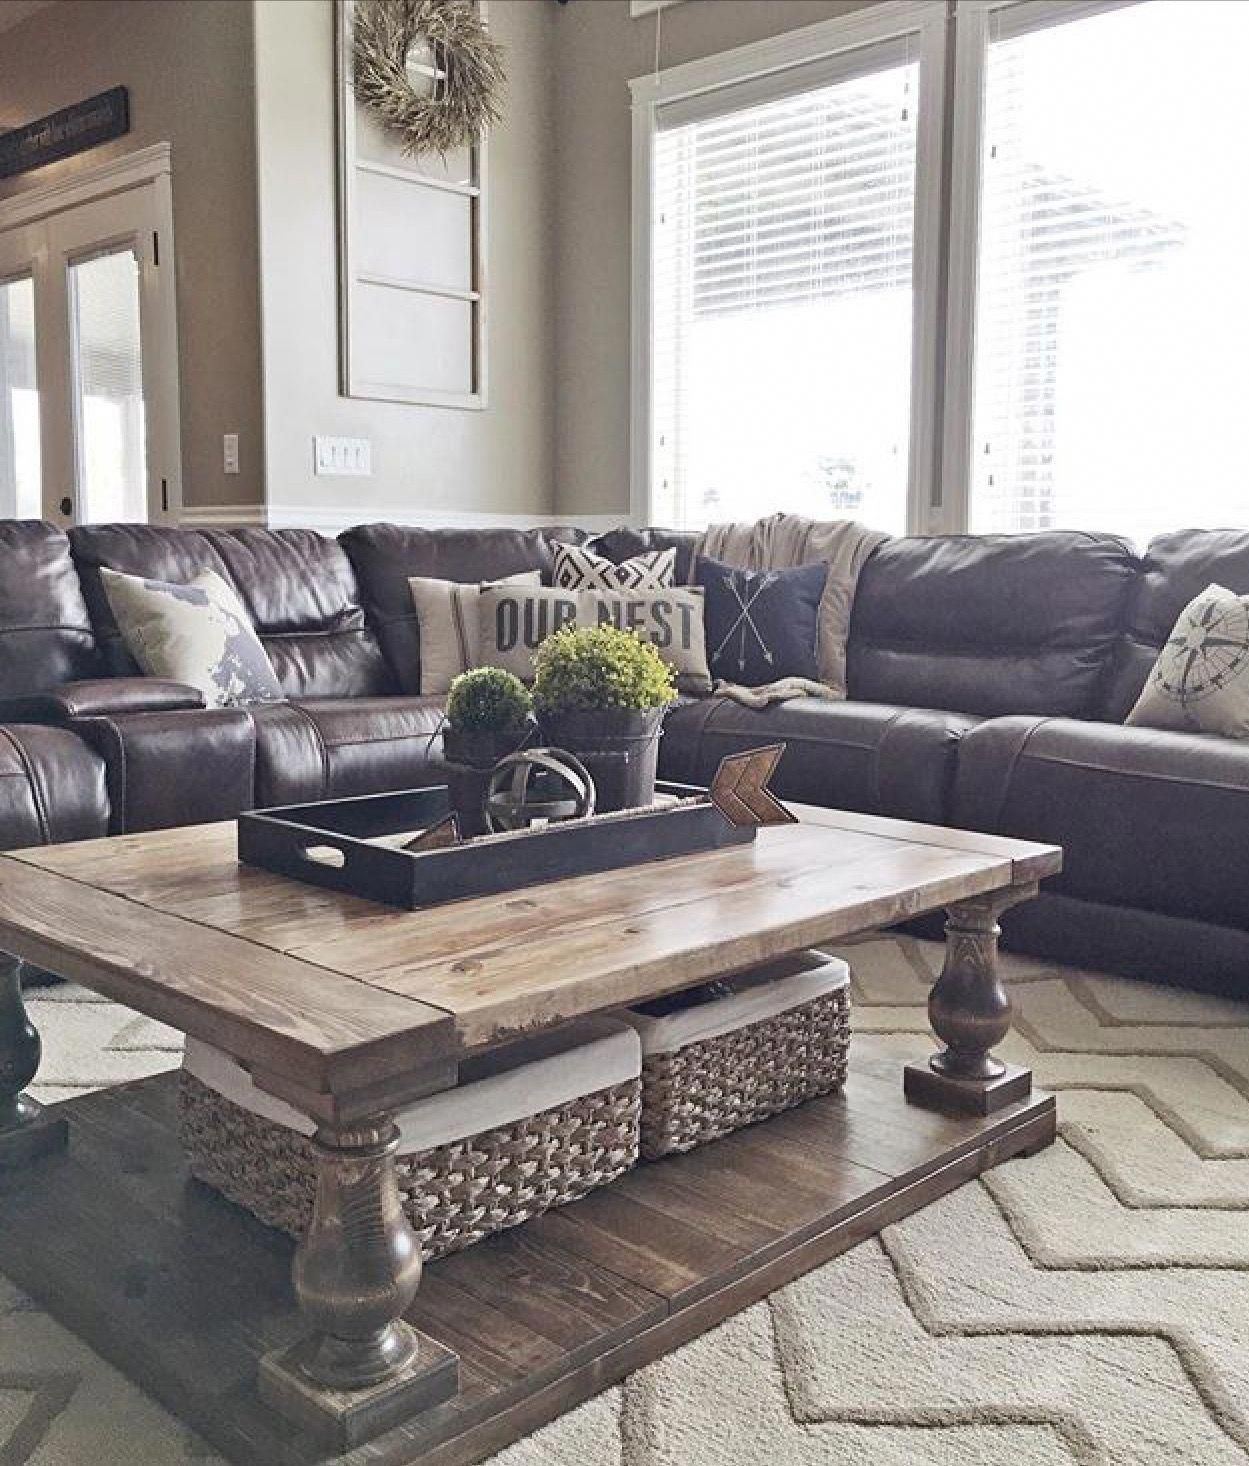 Leather Sofa With Throw Pillows Rug Farm House Living Room Brown Living Room Couches Living Room